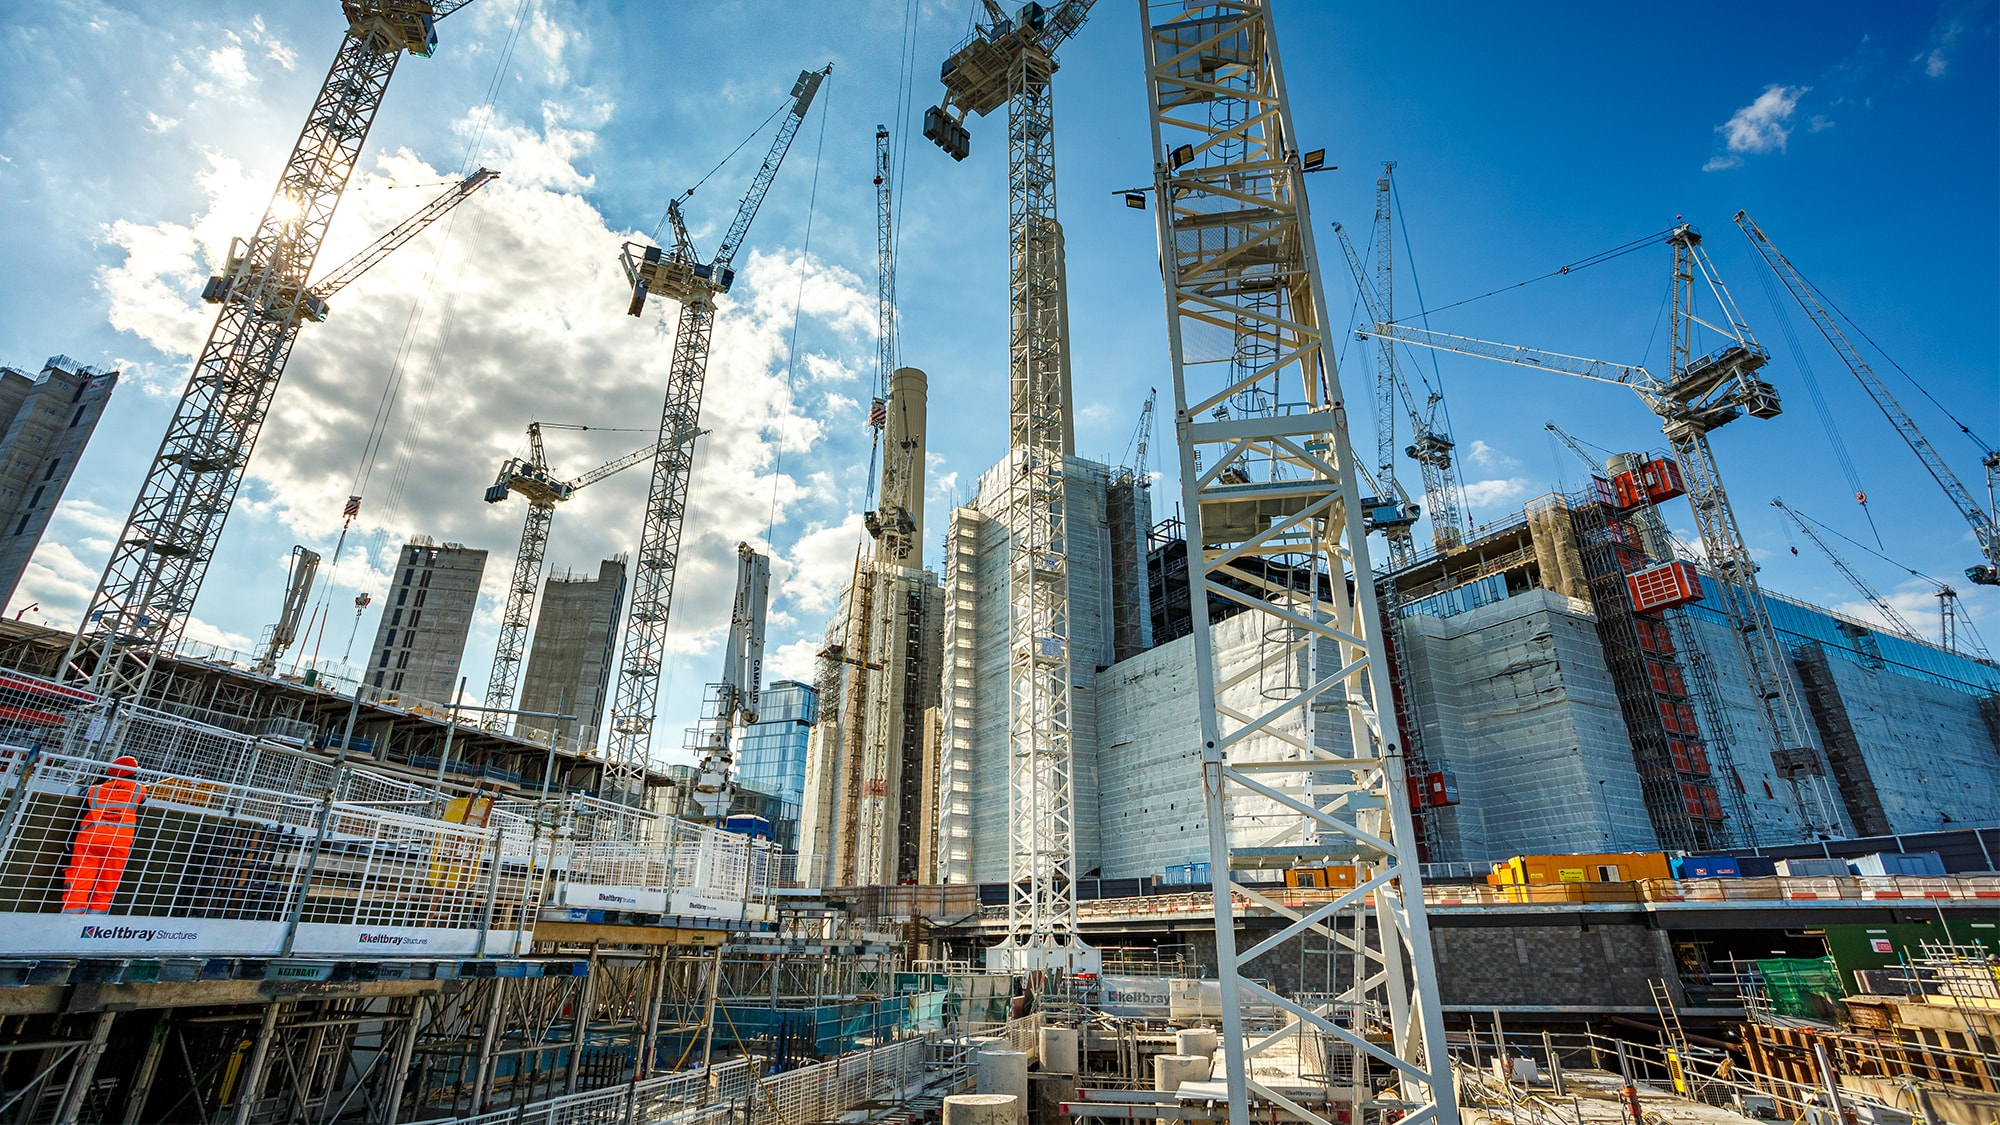 battersea-power-station-phase-3a-image-1-min